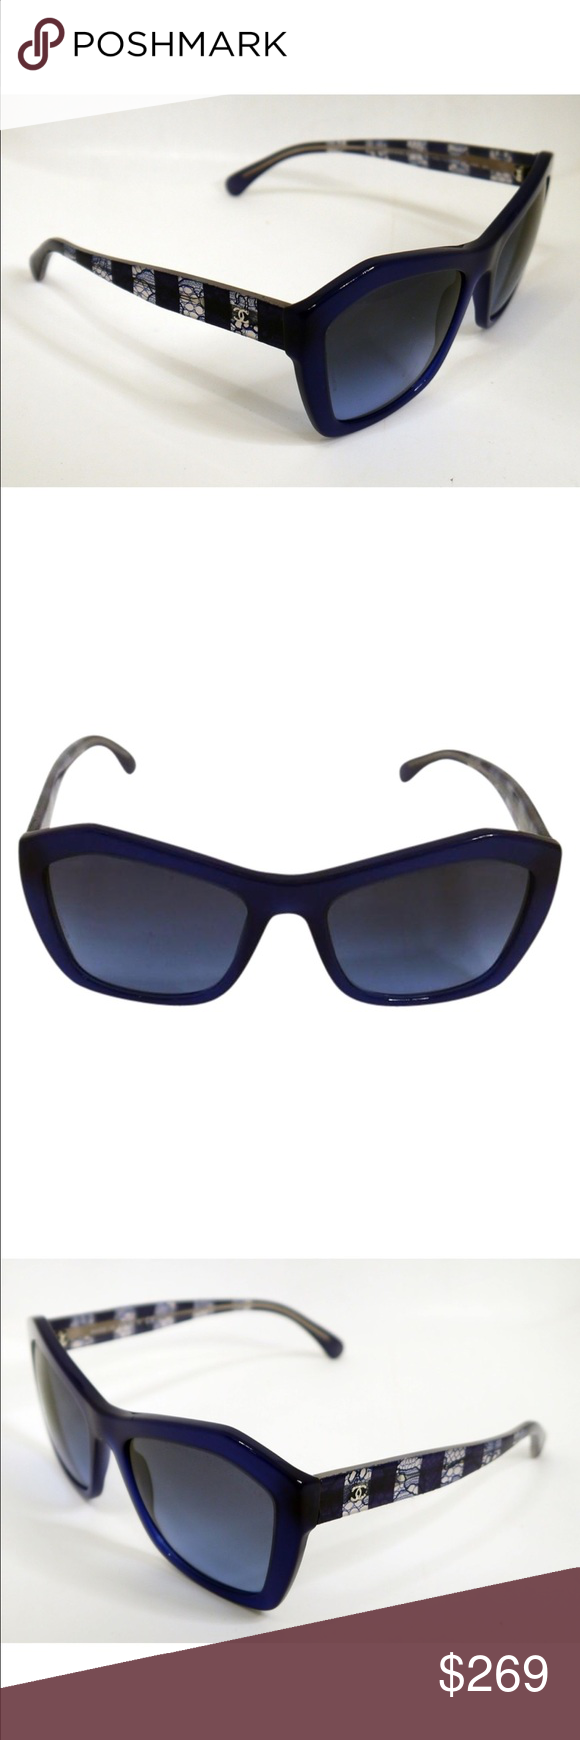 65a265cd10 Chanel rare blue sunglasses Brand  CHANEL Frame Color  Blue Lens Color  Blue  Gradient